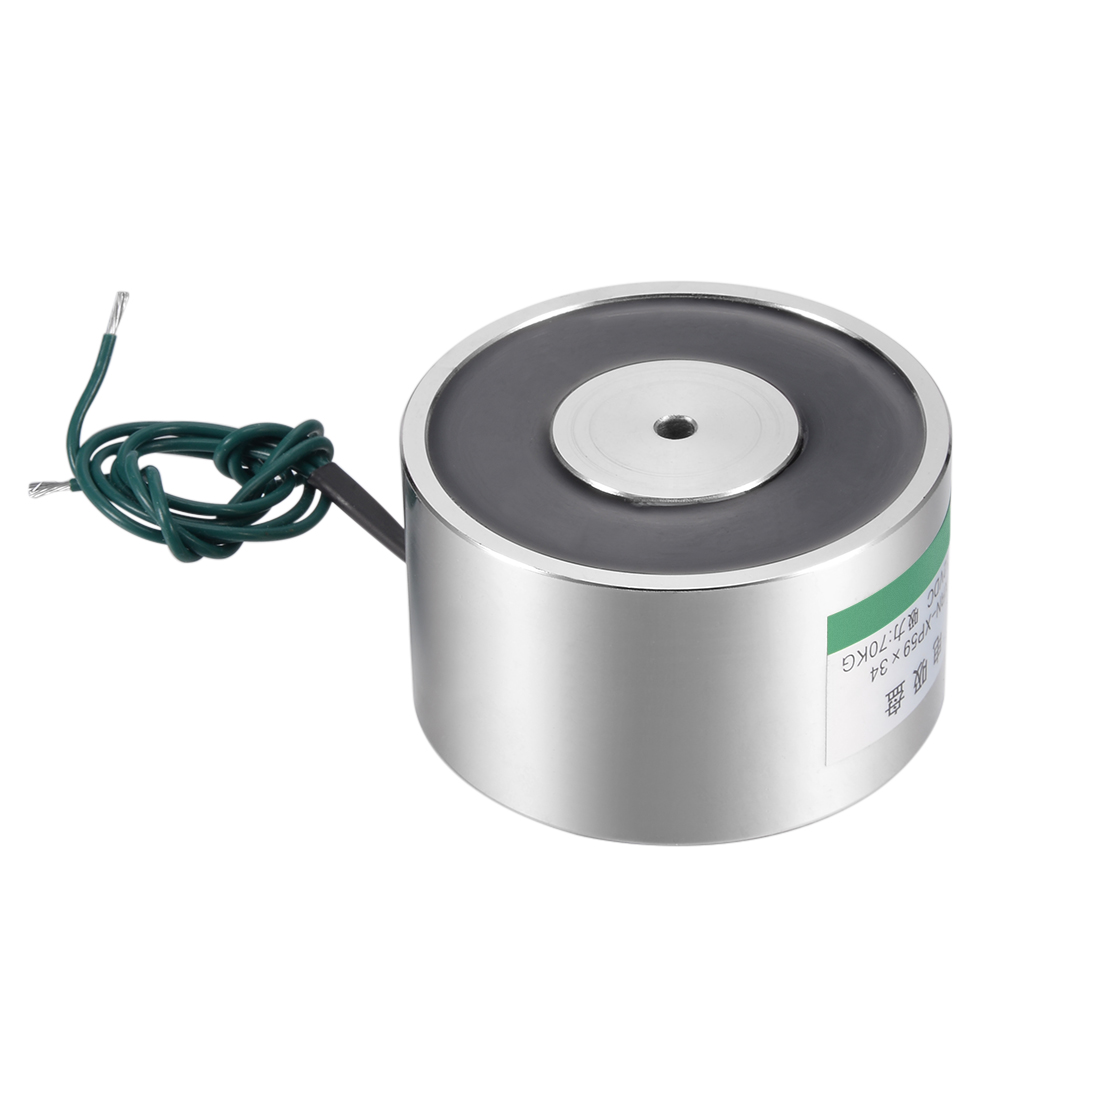 Uxcell 59mm X 34mm DC12V 700N Sucking Disc Solenoid Lift Holding Electromagnet